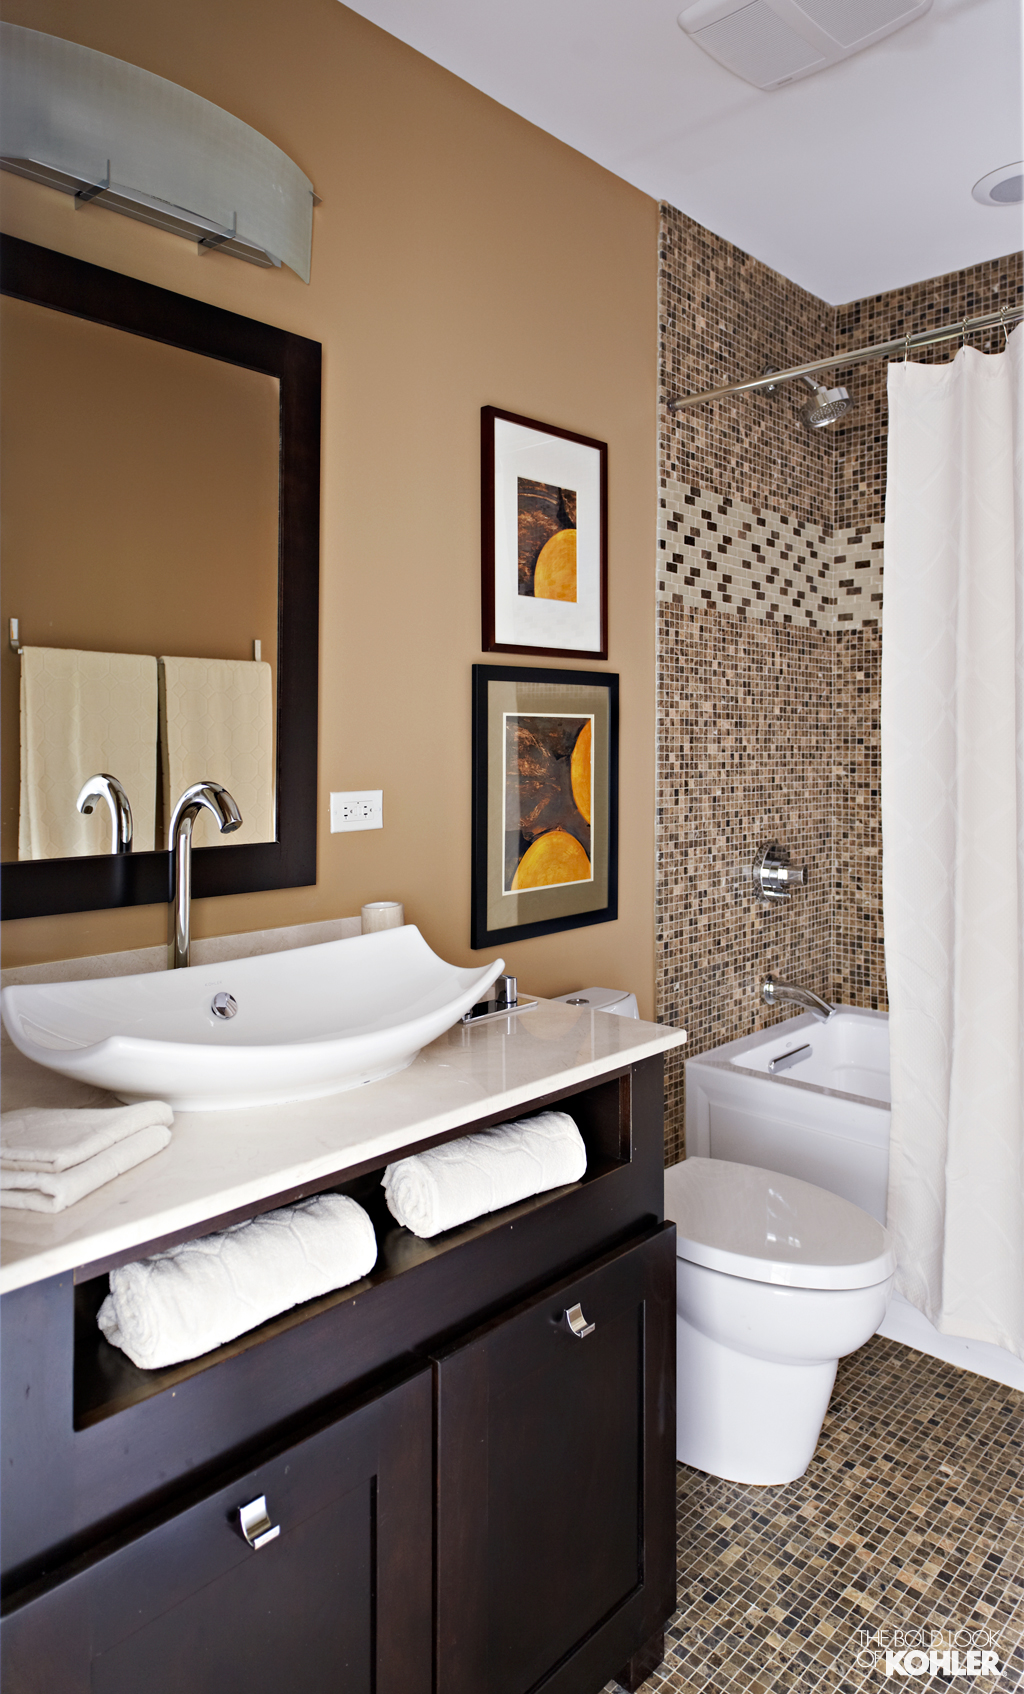 white kohler sinks and silver faucet plus mirror with black frame plus bath up and cabinet for bathroom ideas